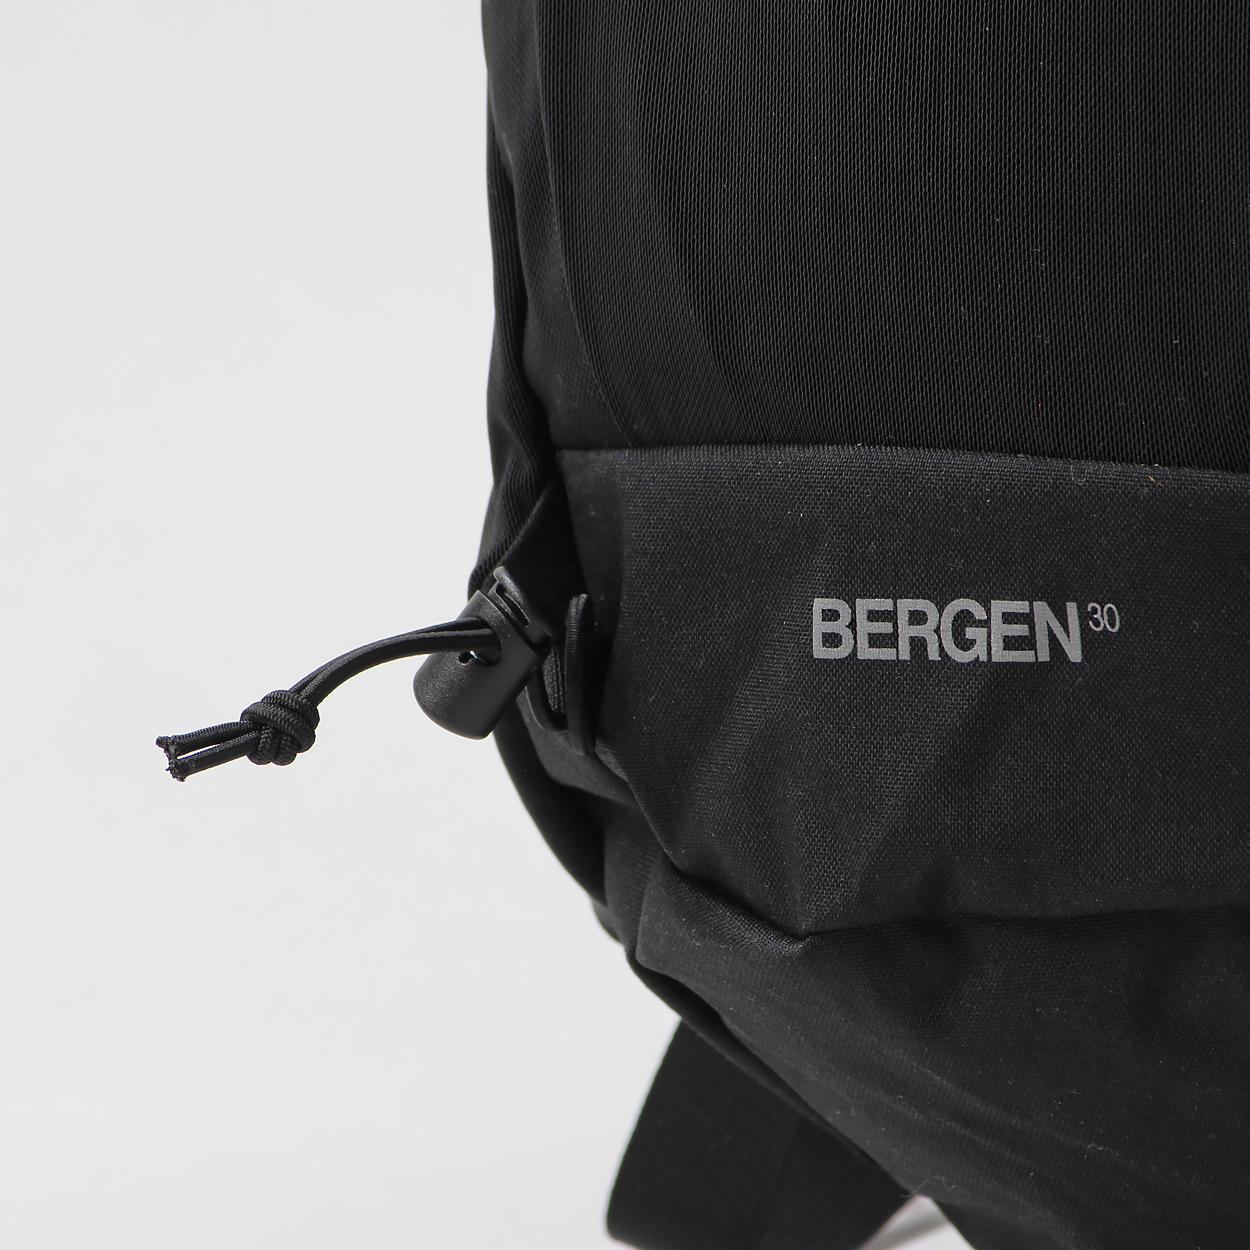 ebee4c22c6 A fantastic waterproof bag from Fjallraven with roll-down style on the top  and stretch pockets around the outside. It has reflectors and straps for  trekking ...